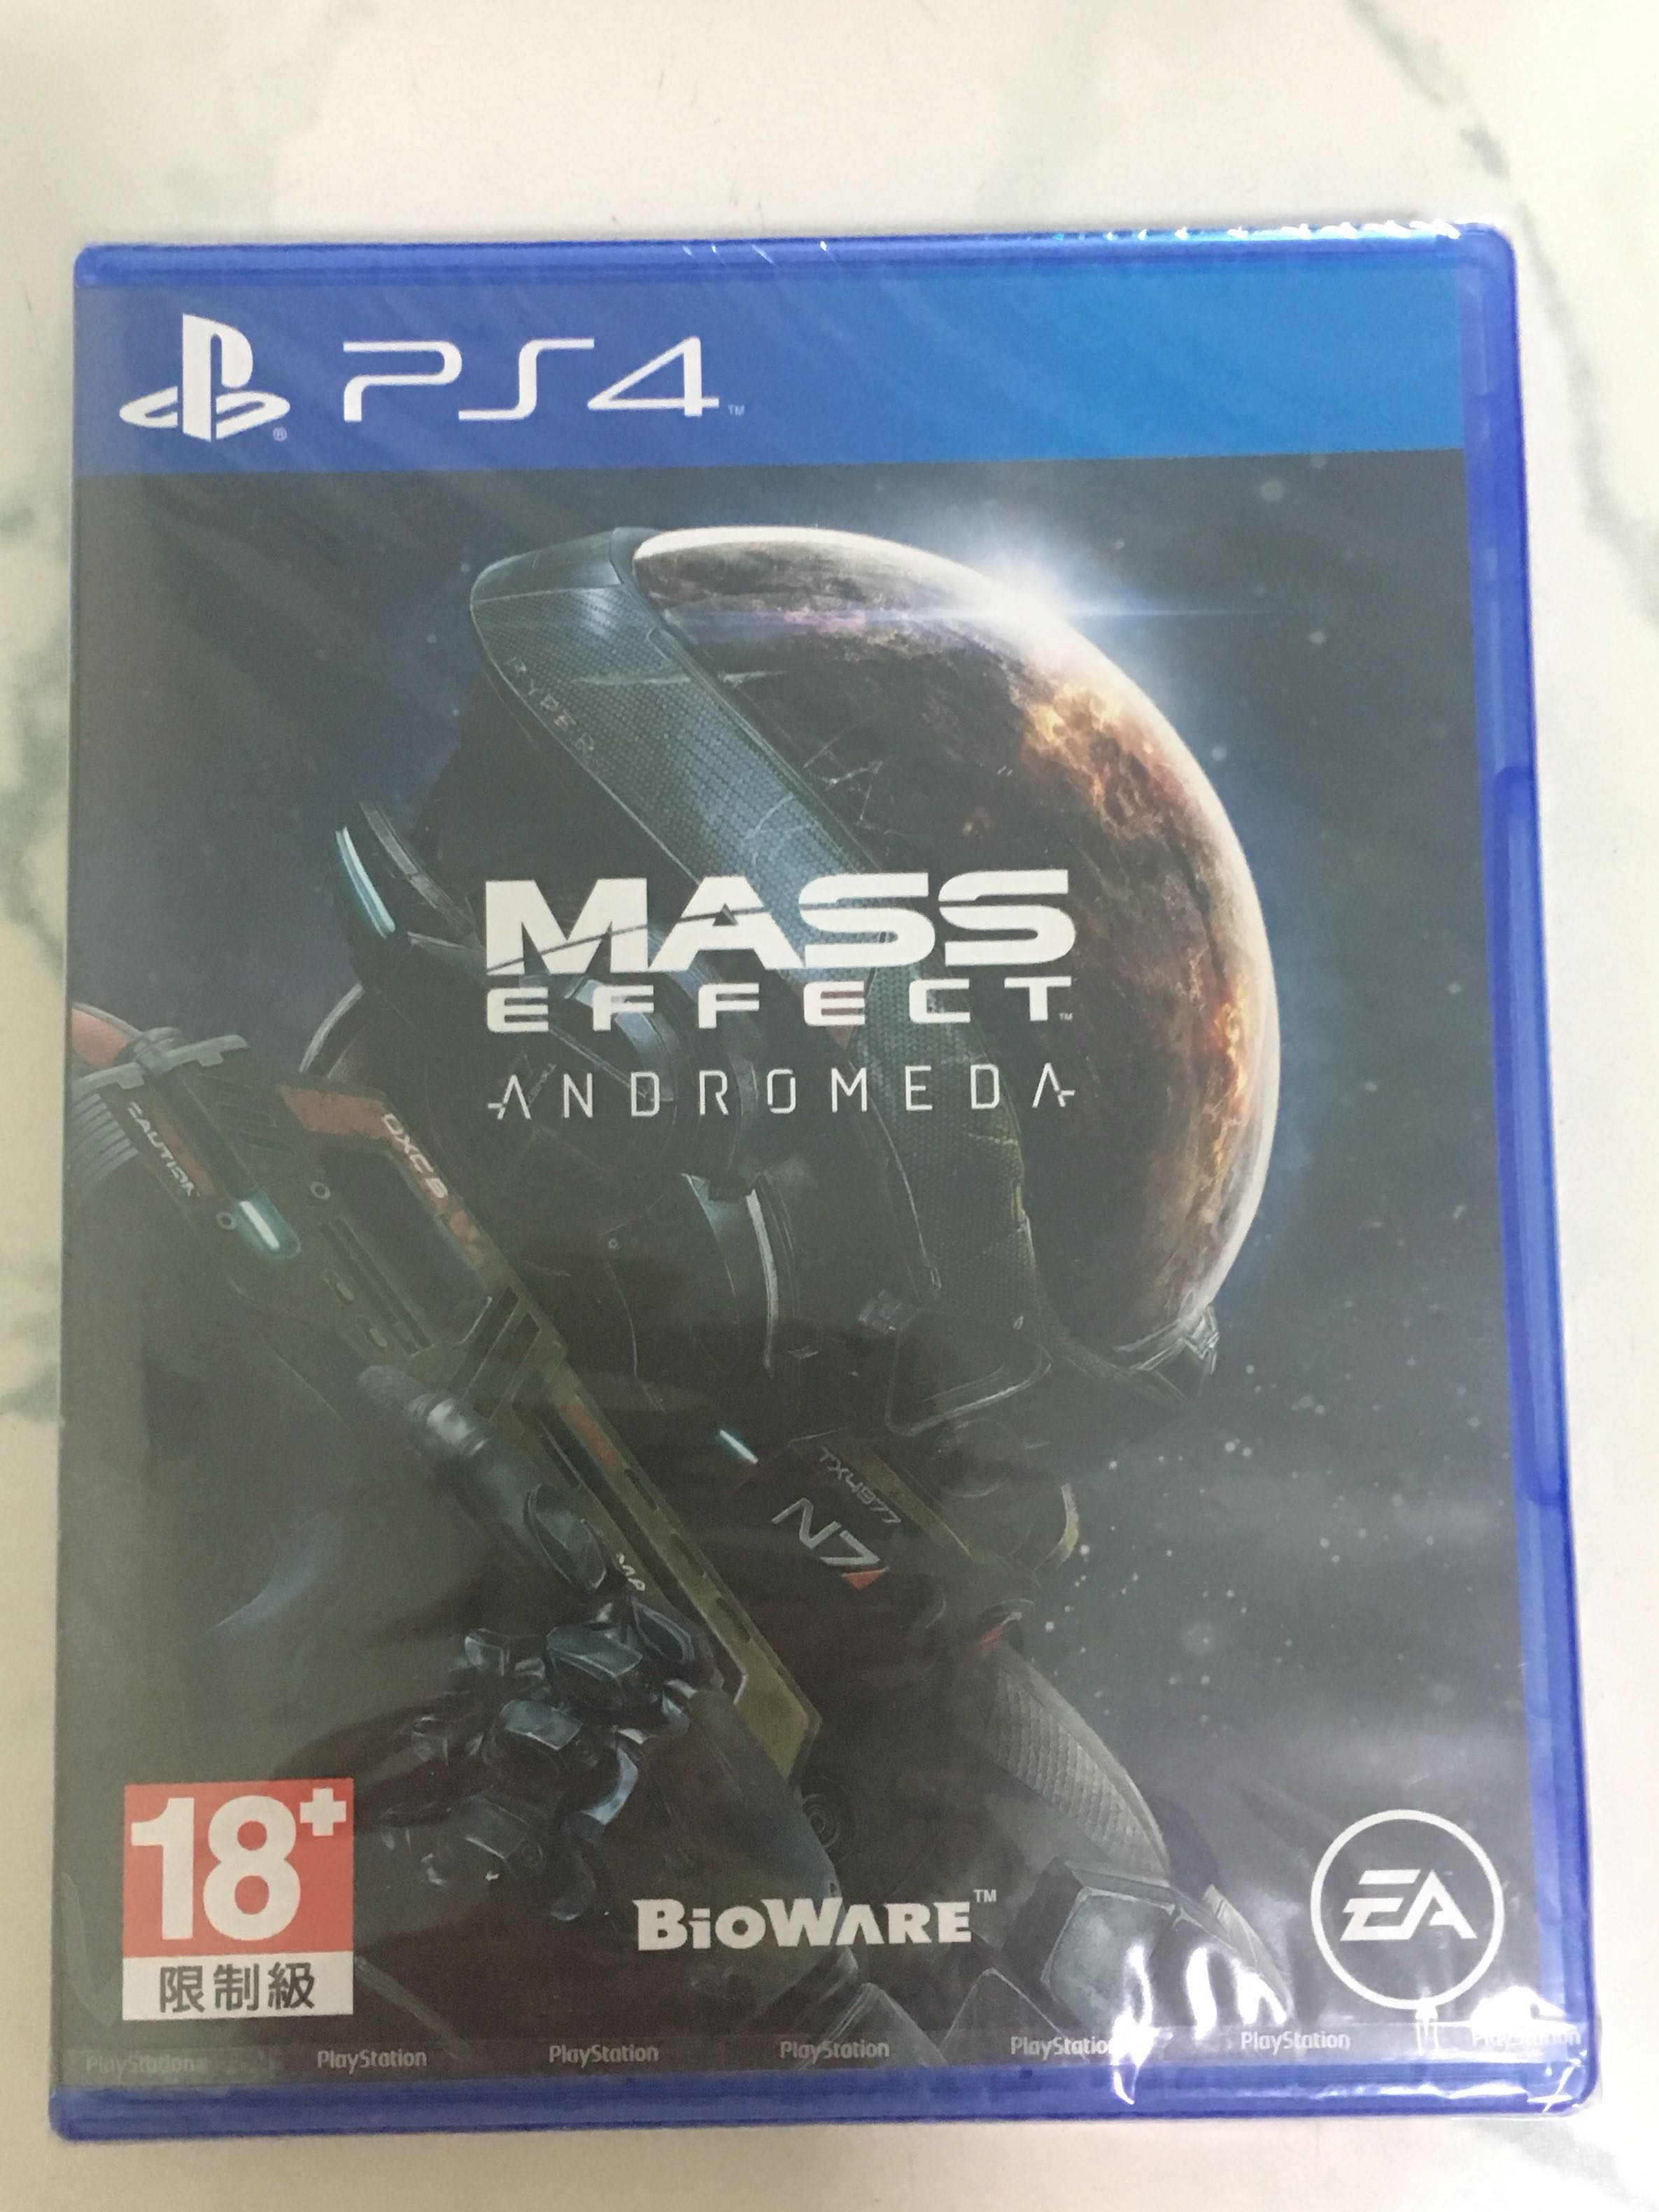 Used Ps4 Game Mass Effect Andromeda Toys Games Video Gaming On Carousell